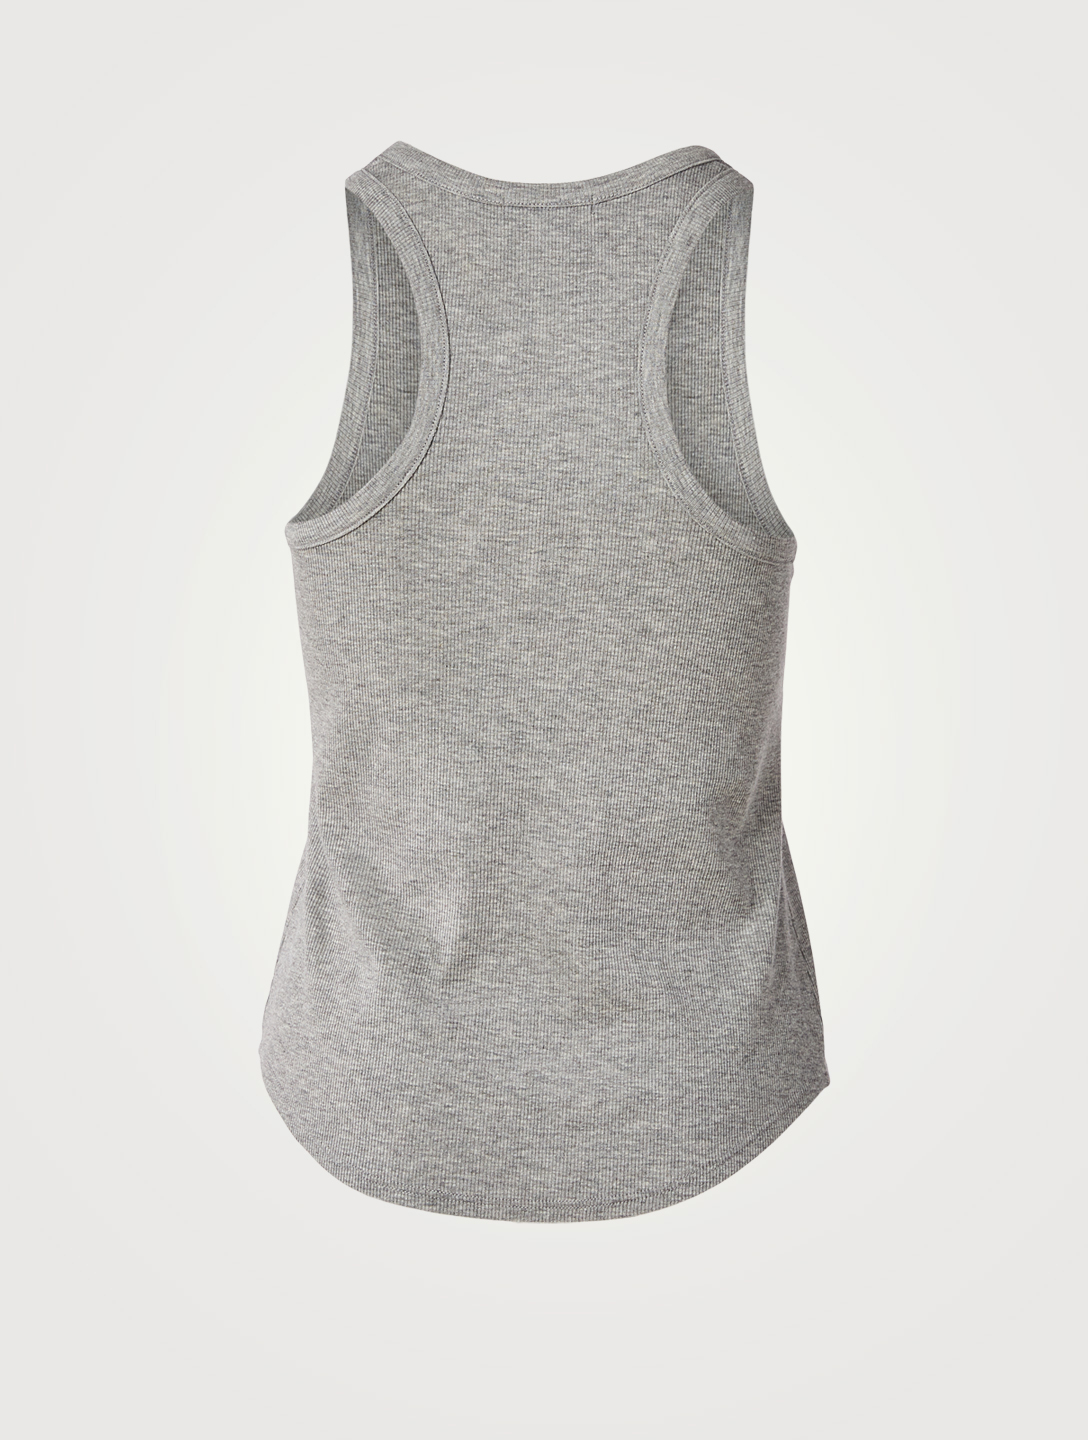 BEYOND YOGA Keep In Line Ribbed Tank Top Women's Grey